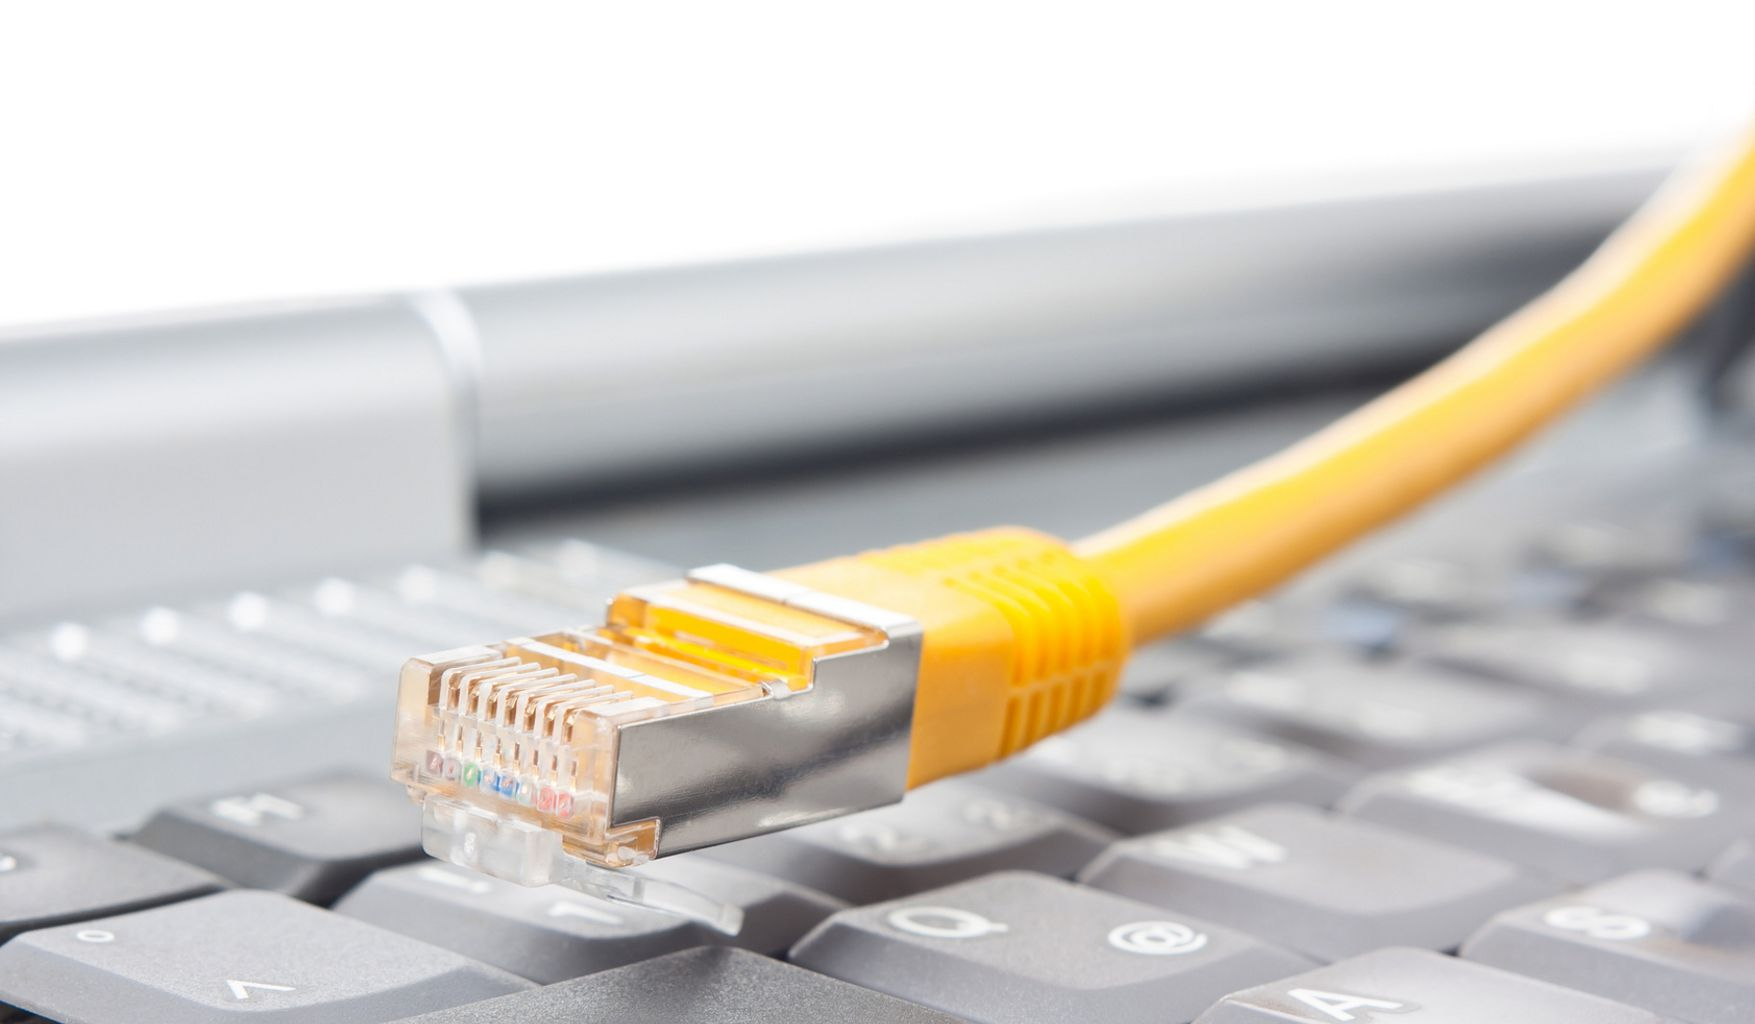 Macro of a yellow network cable in front of a keyboard